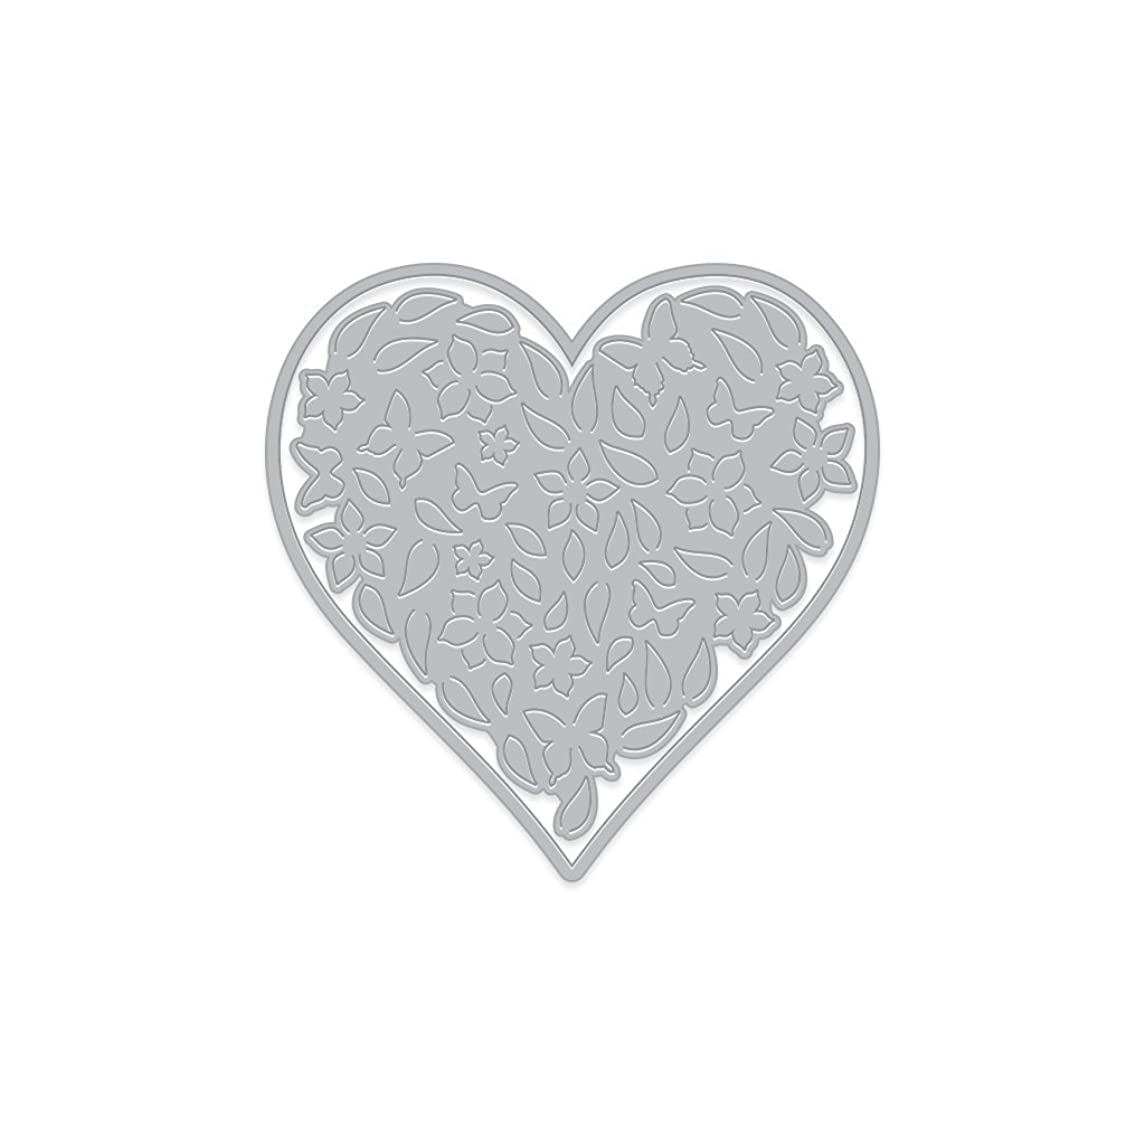 Hero Arts DI441 Paper Layering Die, Floral Heart with Frame